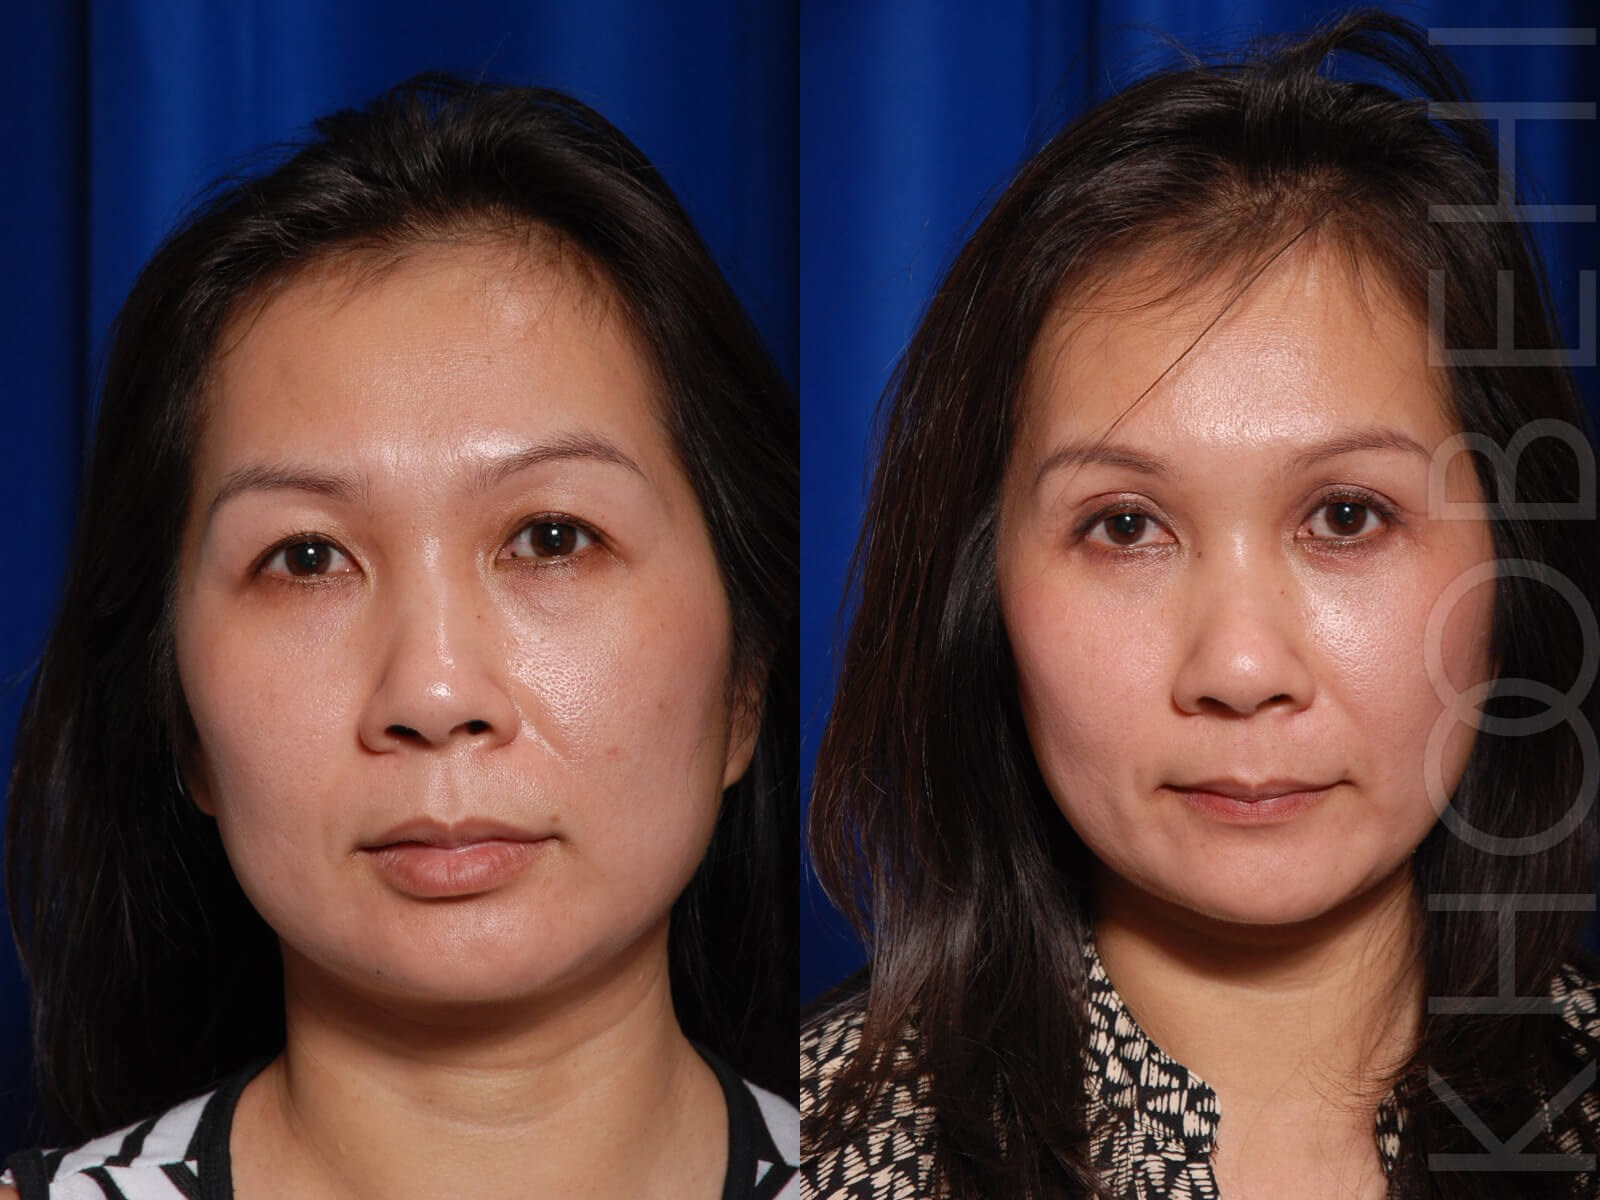 Browlift & Quad Bleph Before/After